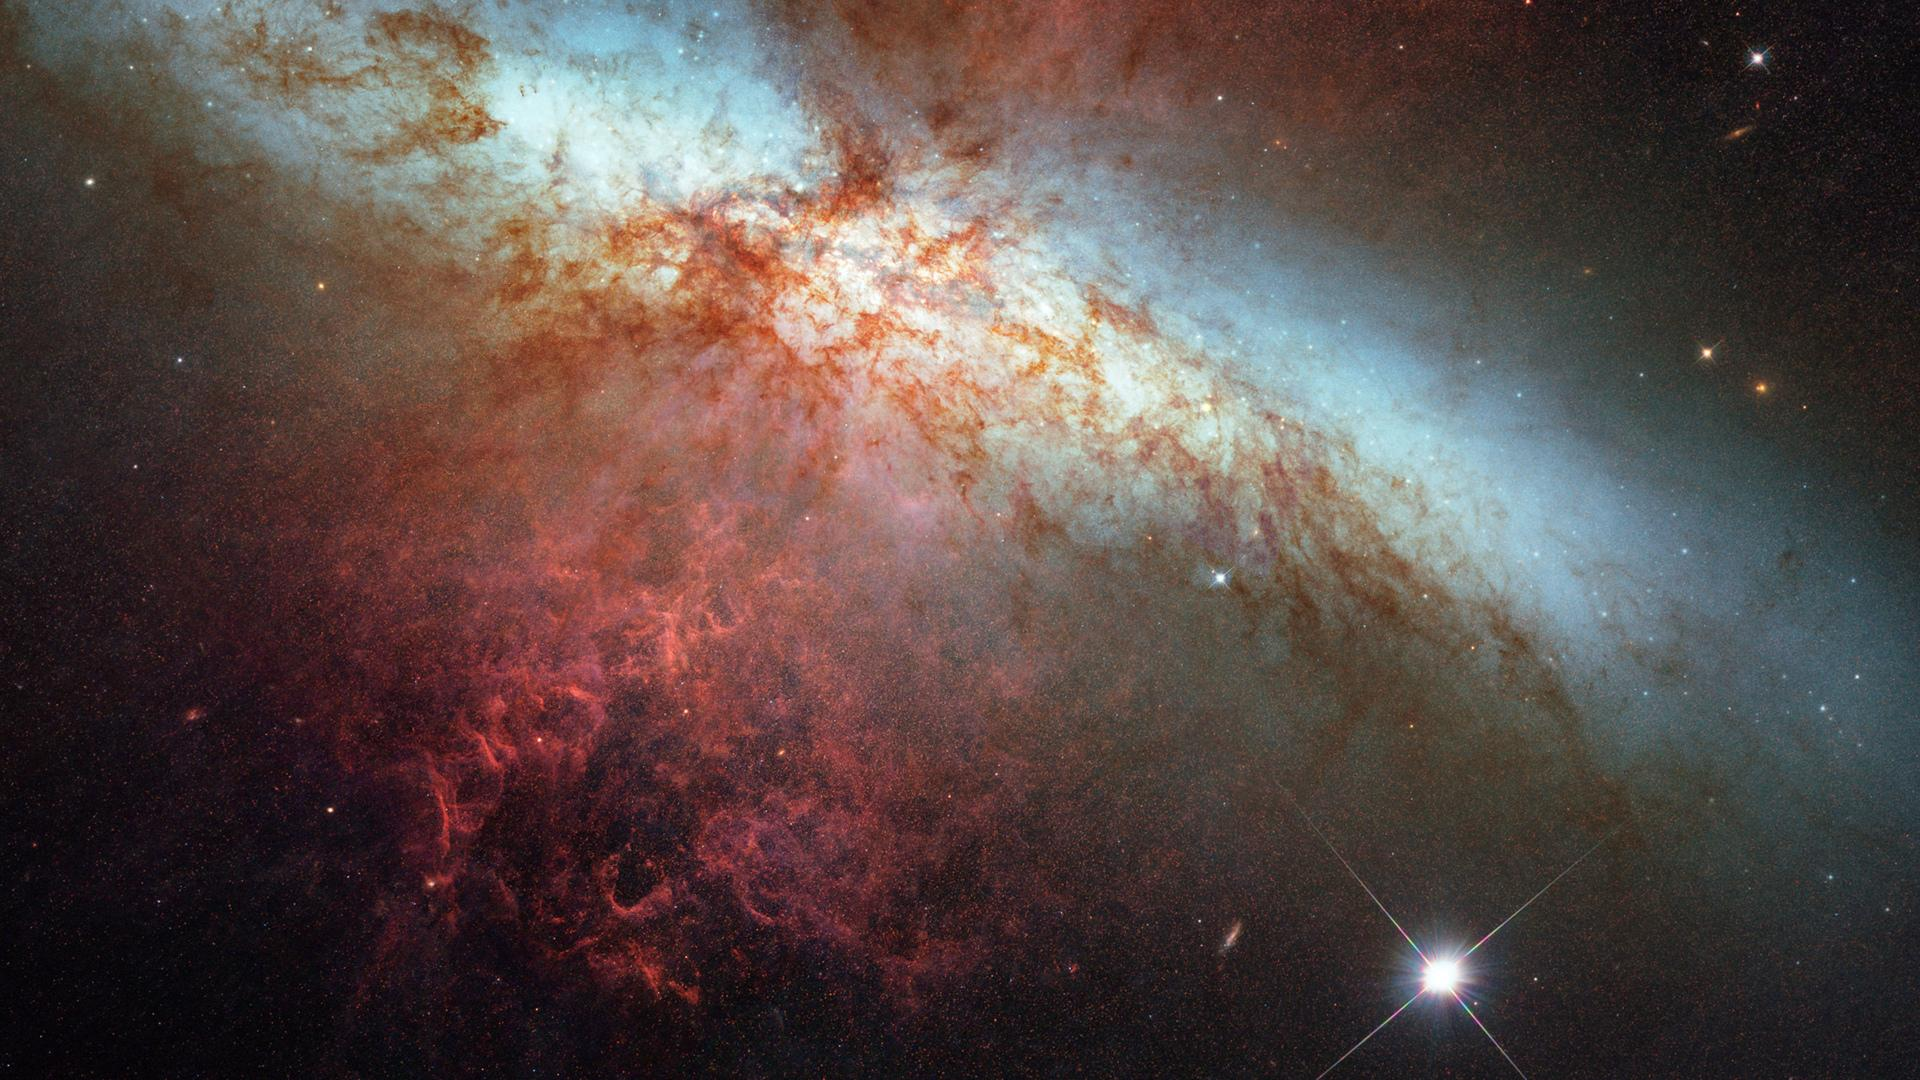 Supernova Sci Fi at 320 x 480 iPhone size wallpapers HD quality